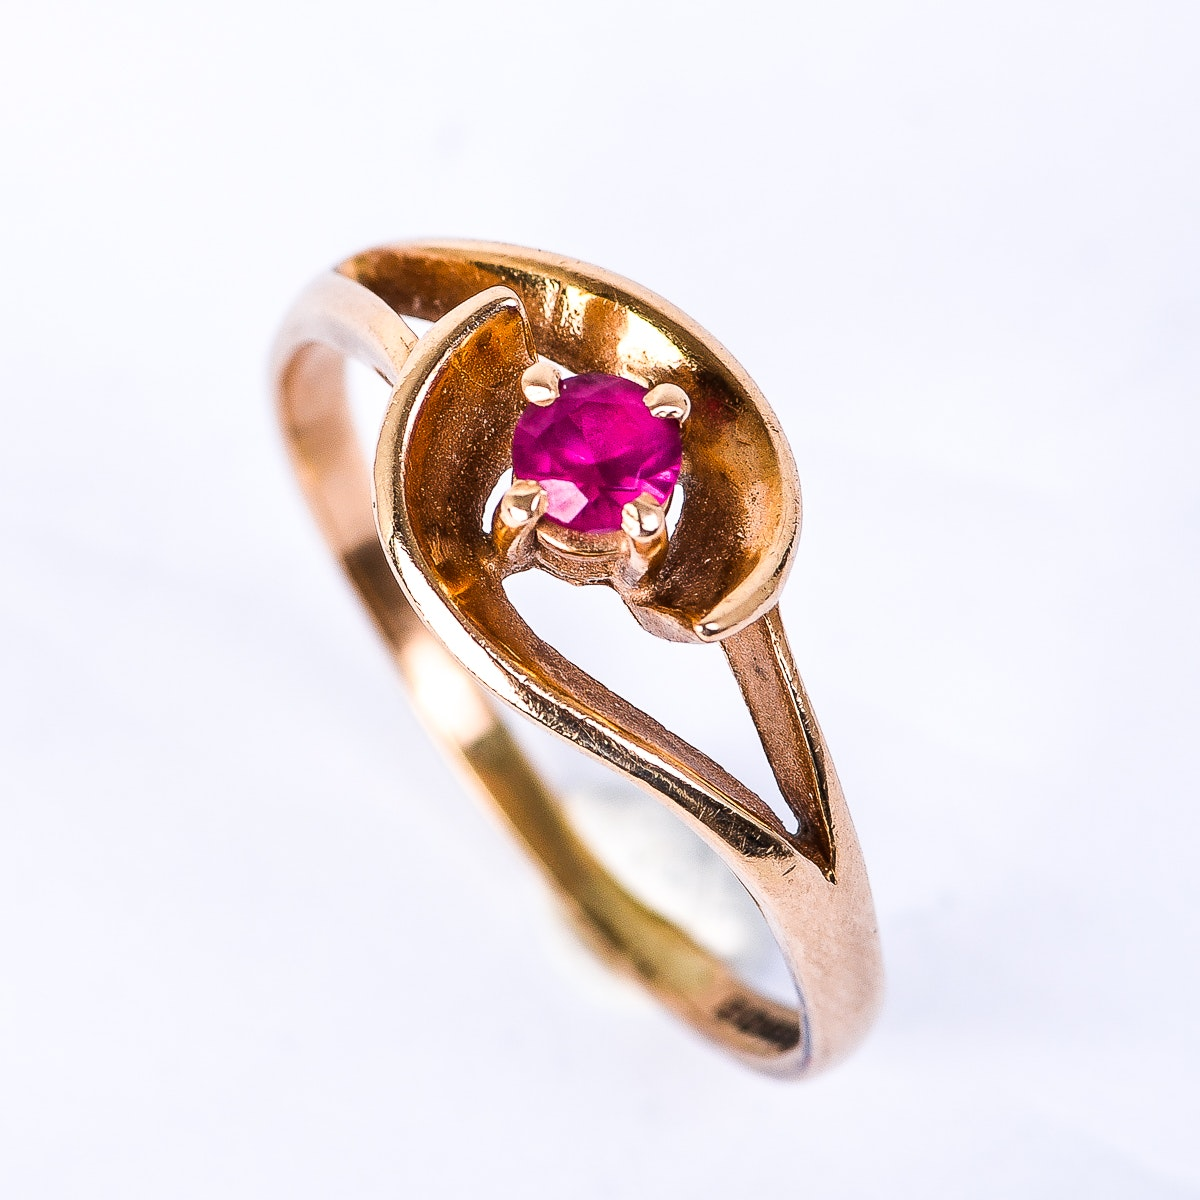 Vintage 14K Yellow Gold and Pink Stone Ring